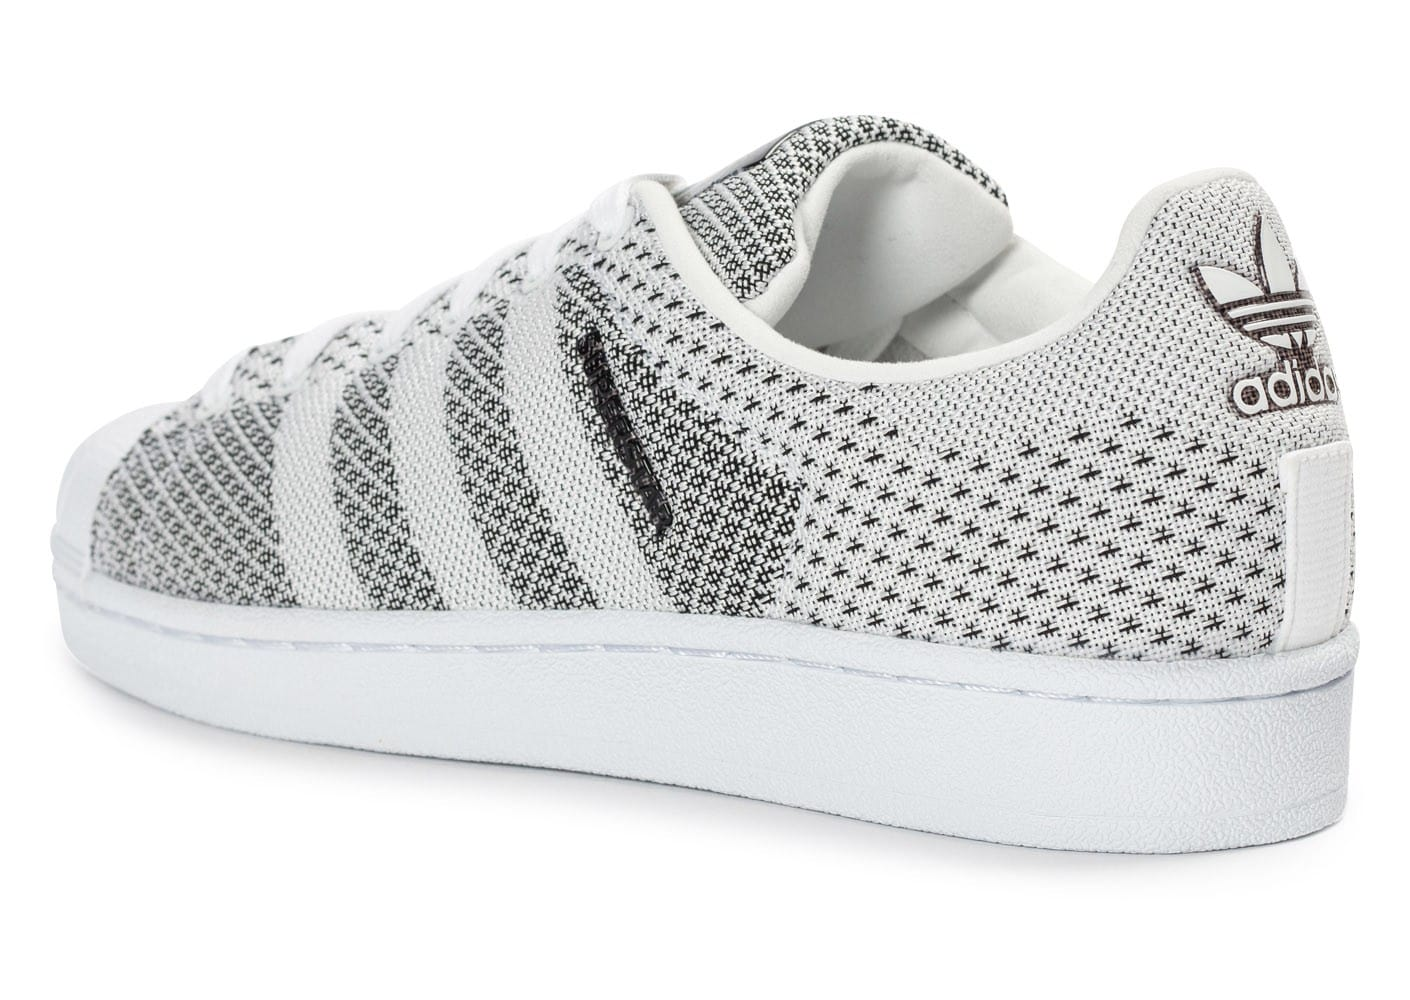 Soldes adidas superstar weave blanche En Ligne Les Baskets adidas superstar  weave blanche en vente outlet. Nouvelle Collection adidas superstar weave  ... 1c61a51951b